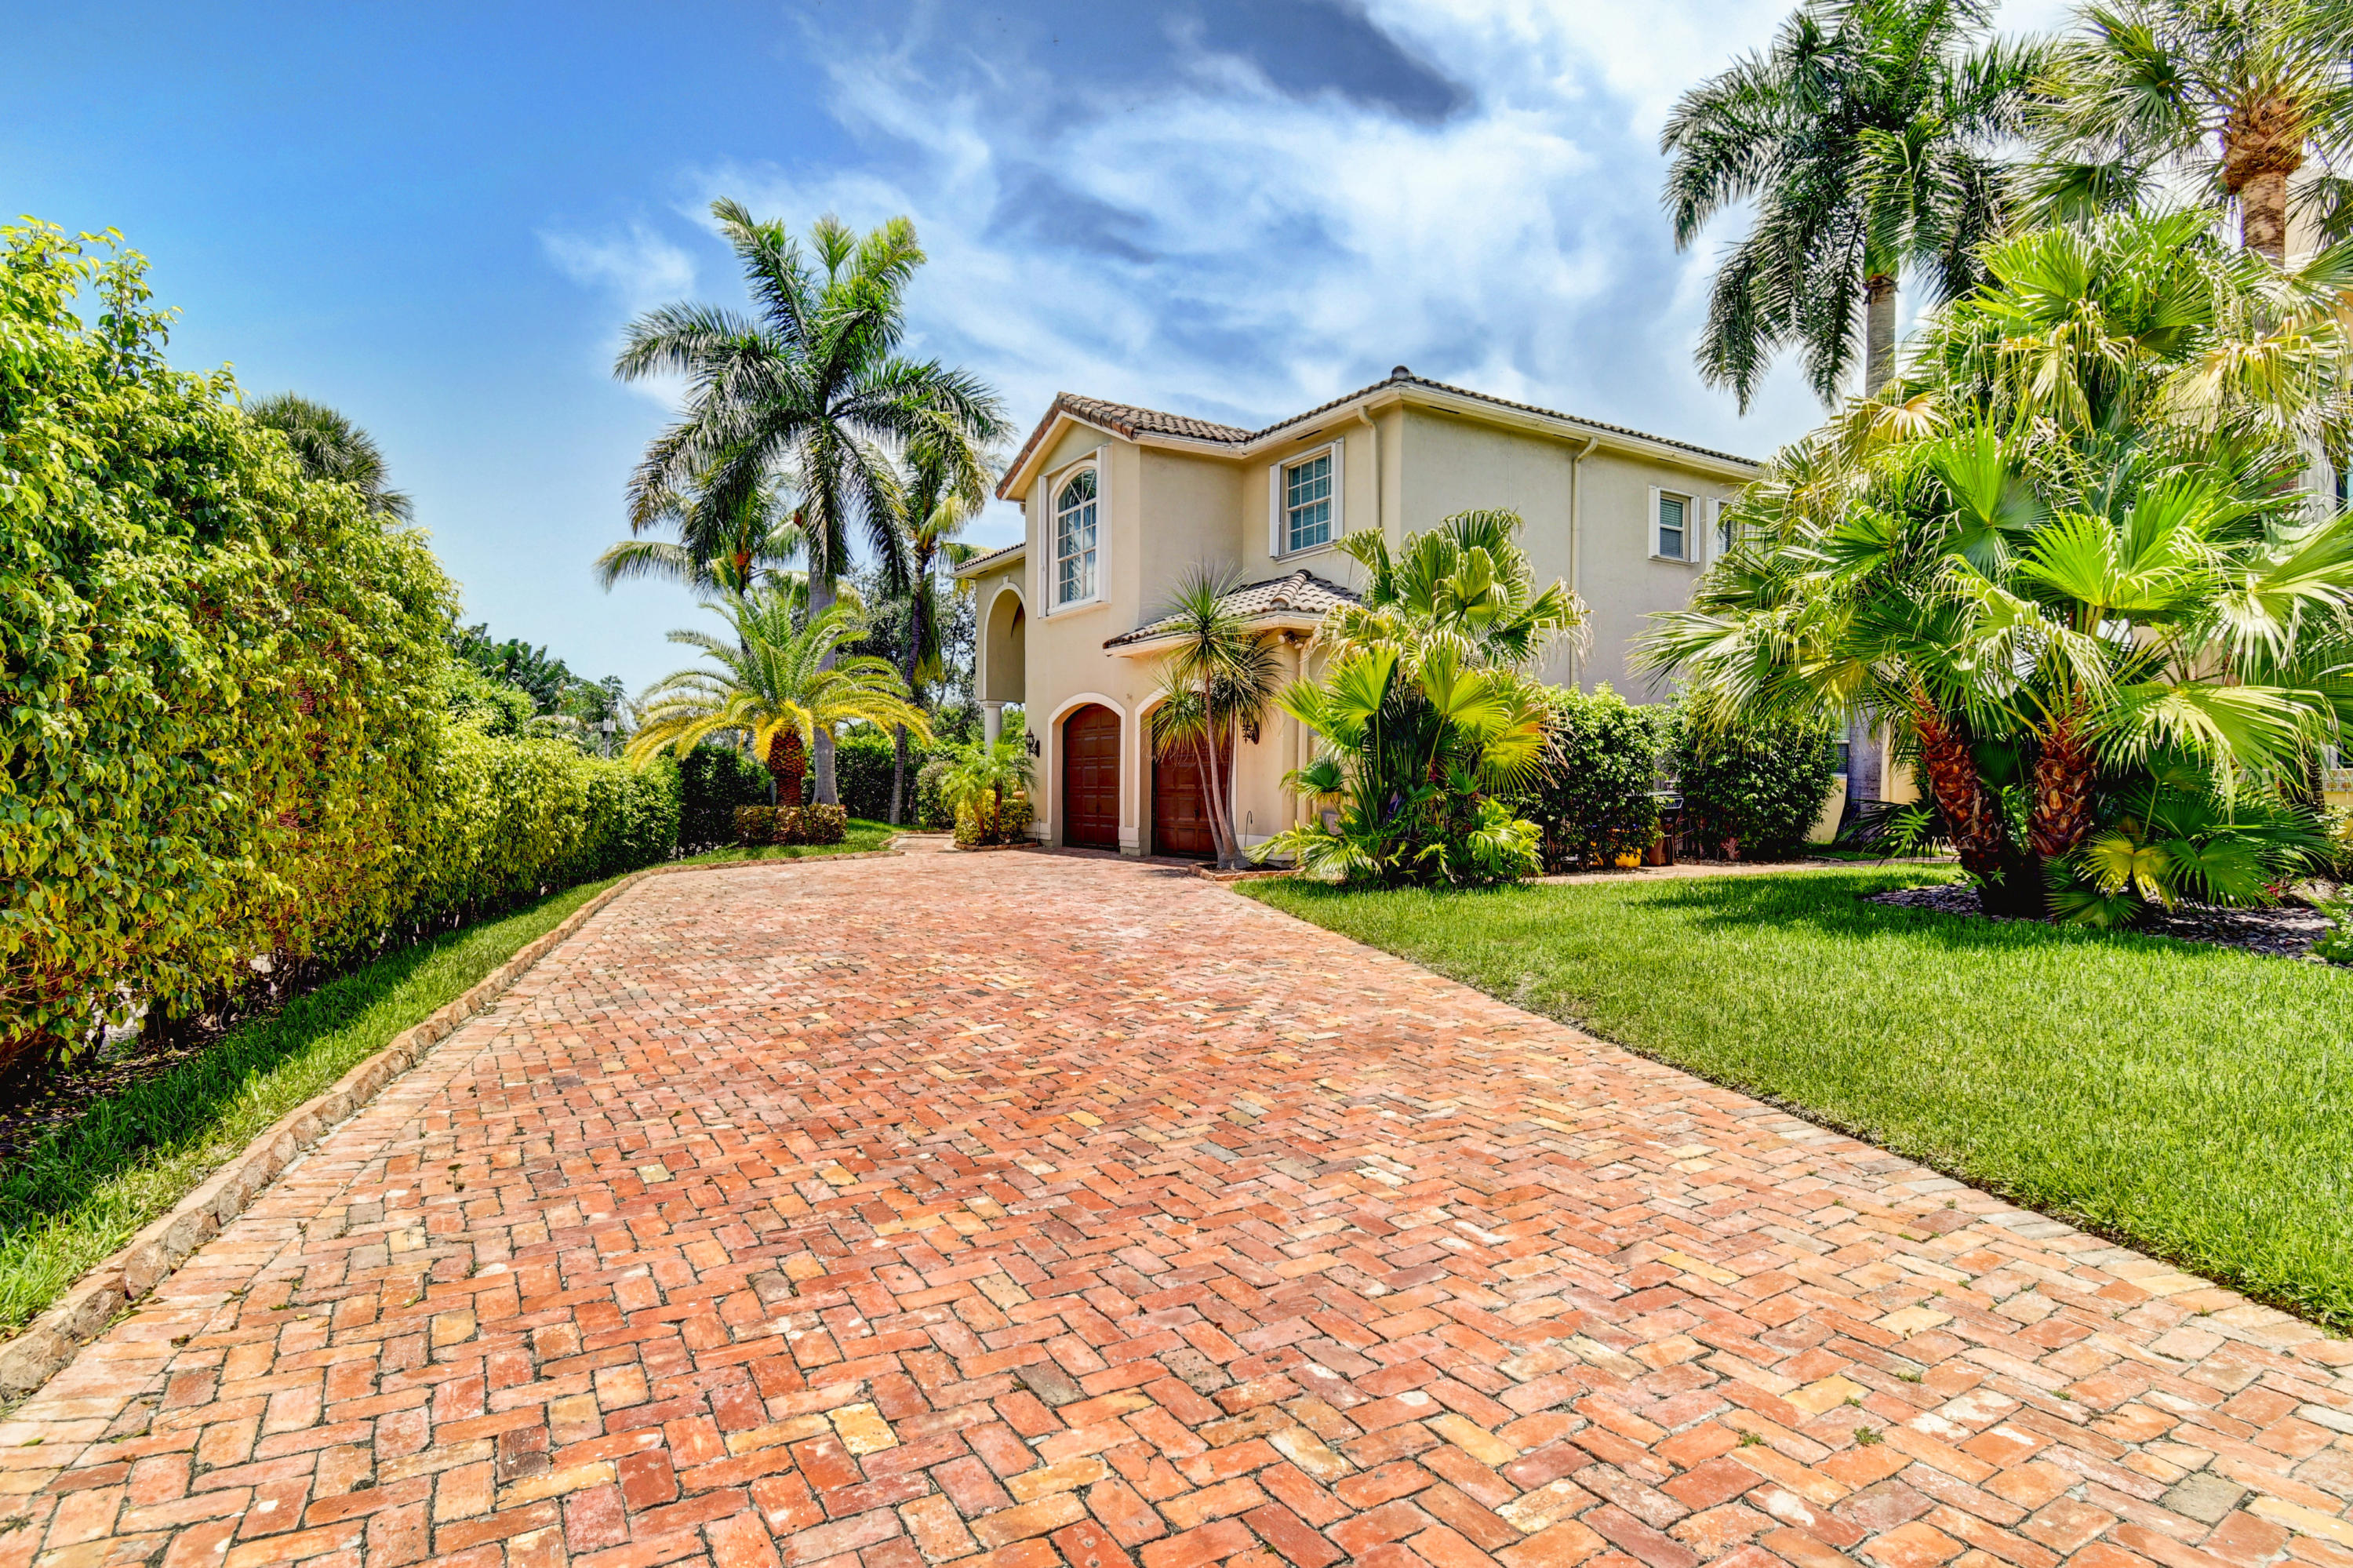 BOCA EAST ESTATES BOCA RATON REAL ESTATE